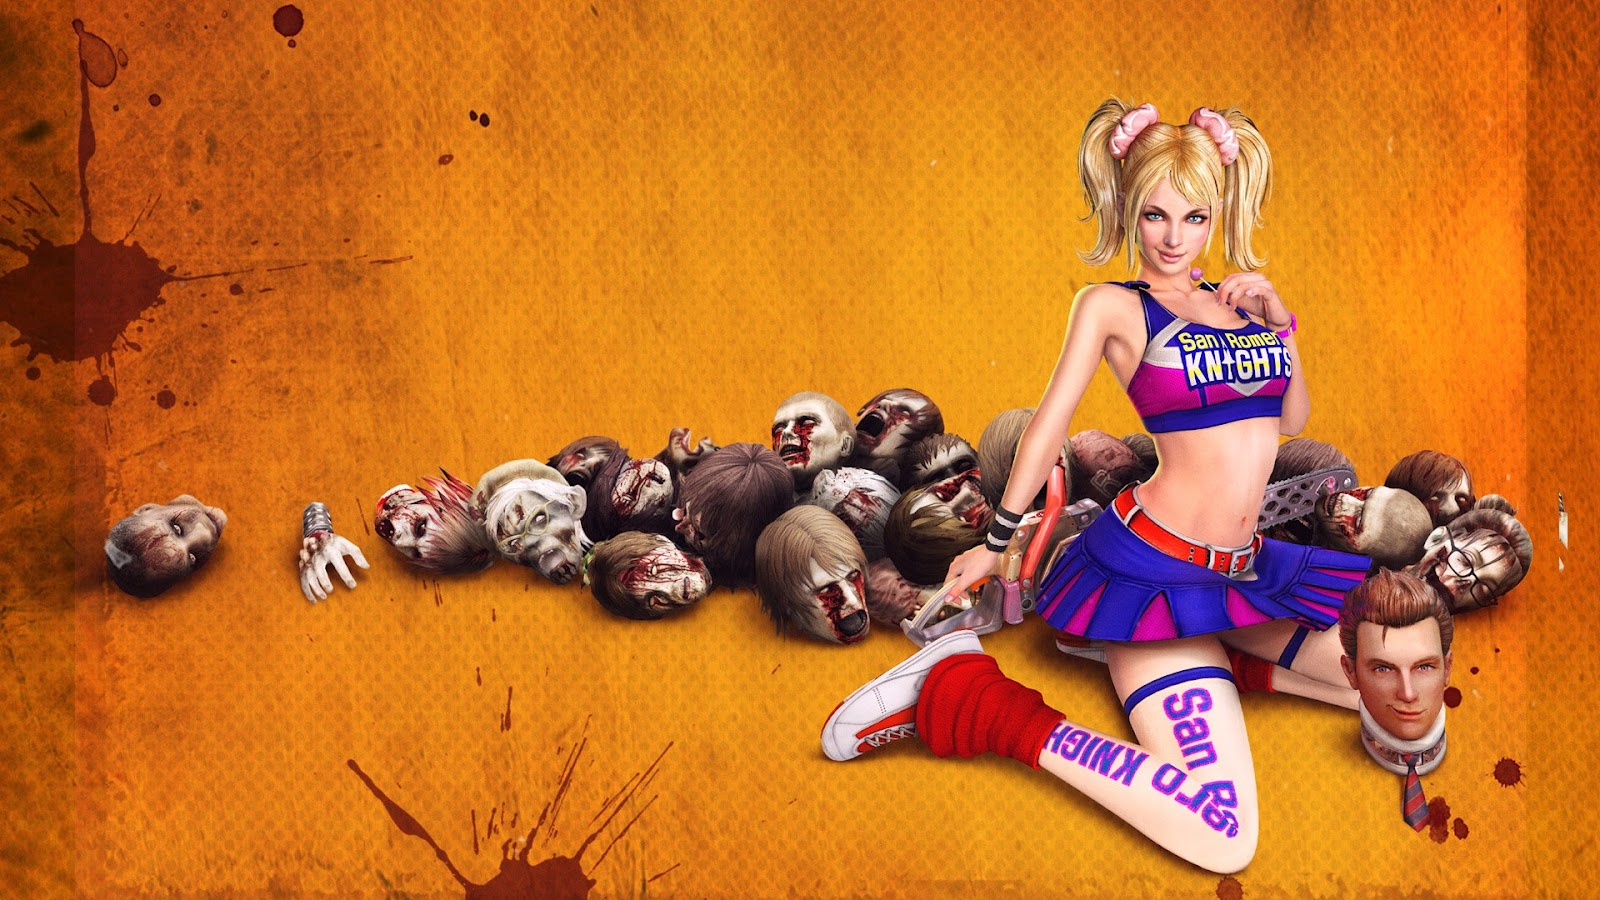 Lollipop+Chainsaw+wallpapers+5 Lollipop Chainsaw Wallpapers in HD   1080p